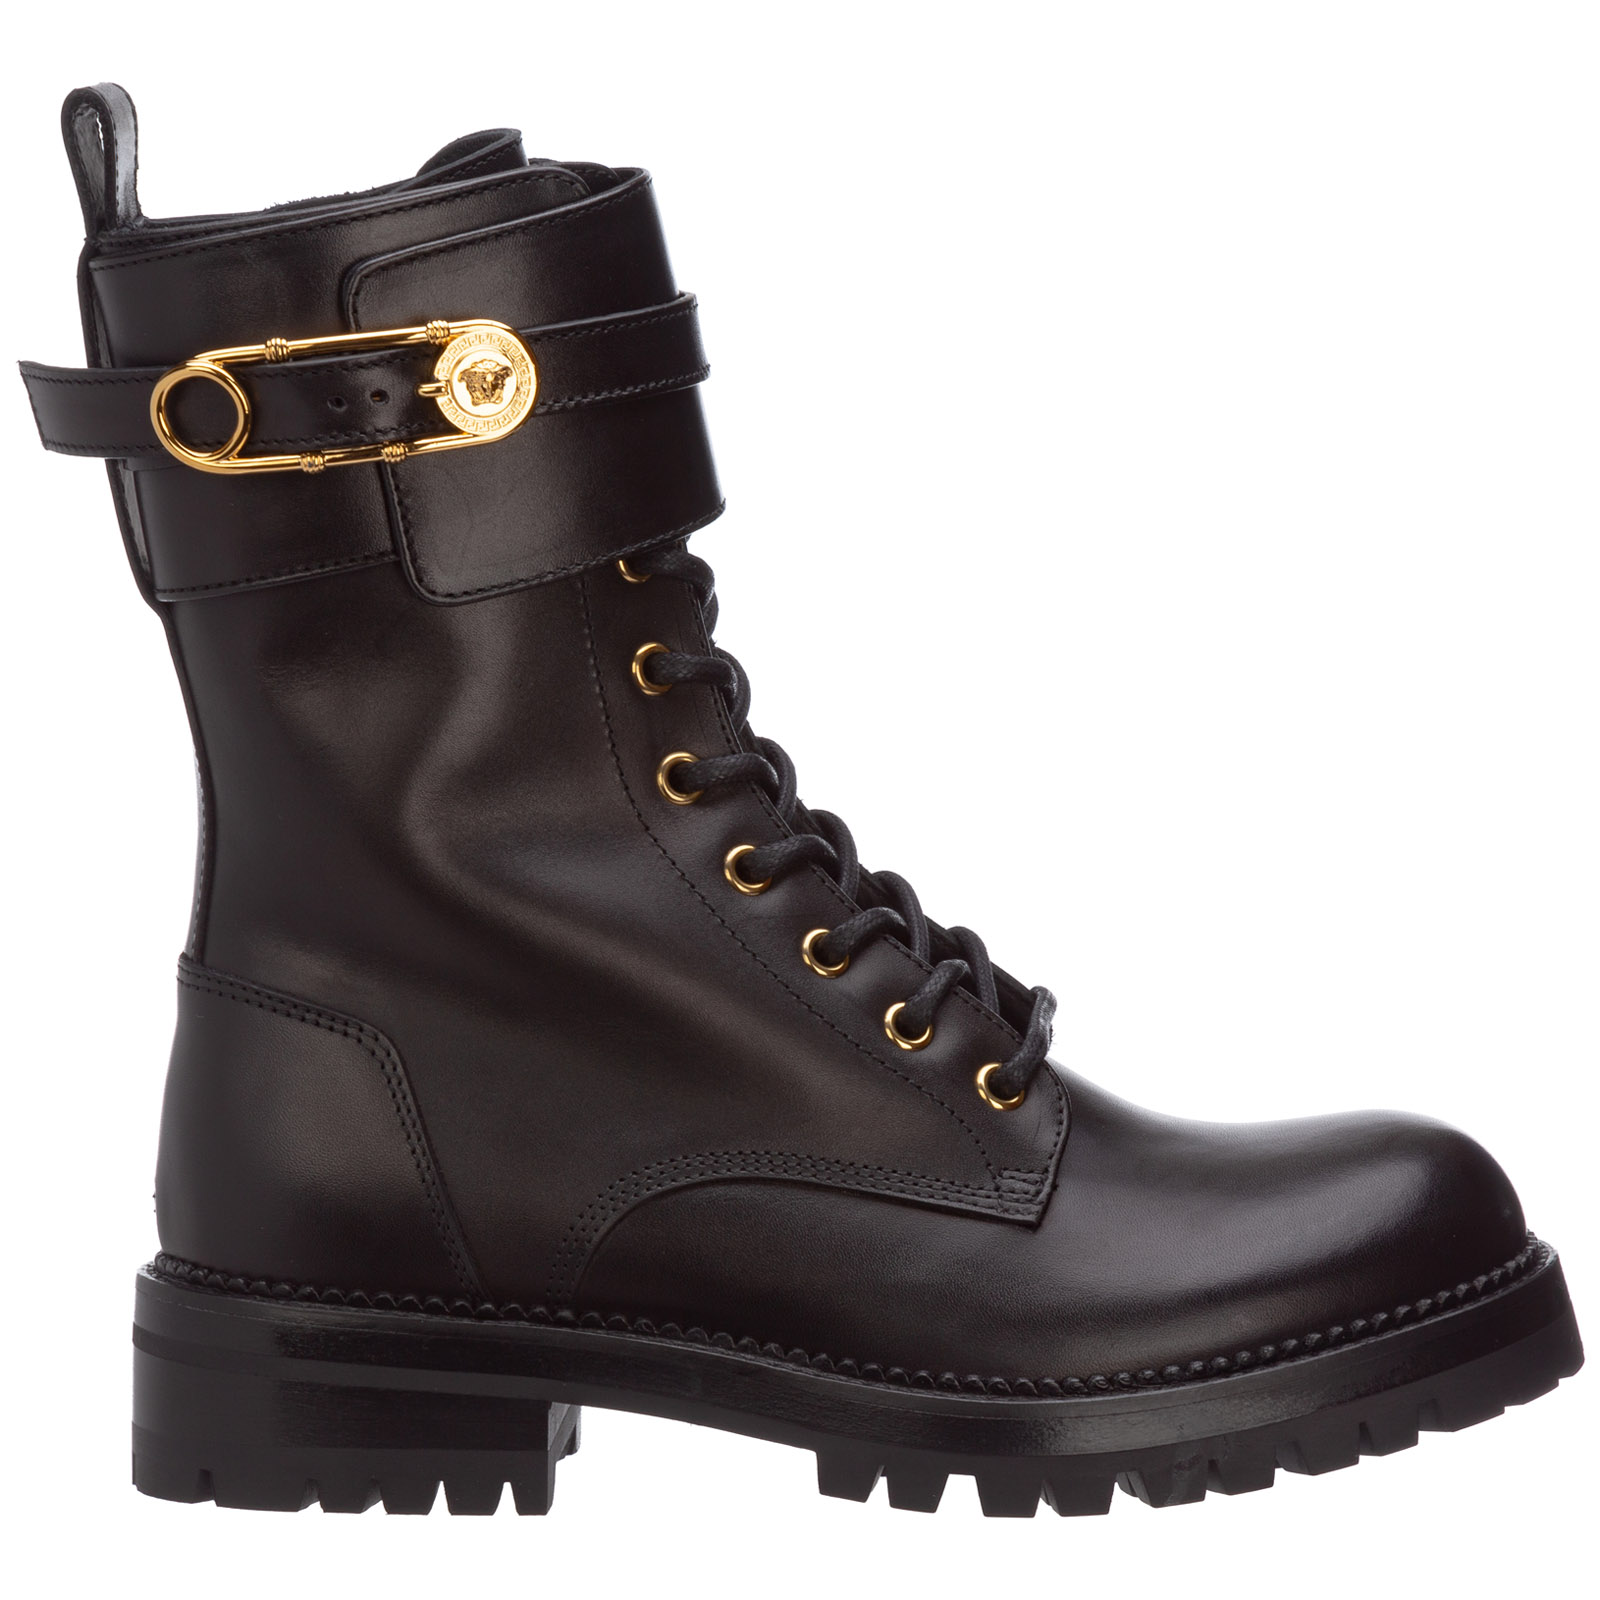 Versace Leathers WOMEN'S LEATHER COMBAT BOOTS SAFETY PIN